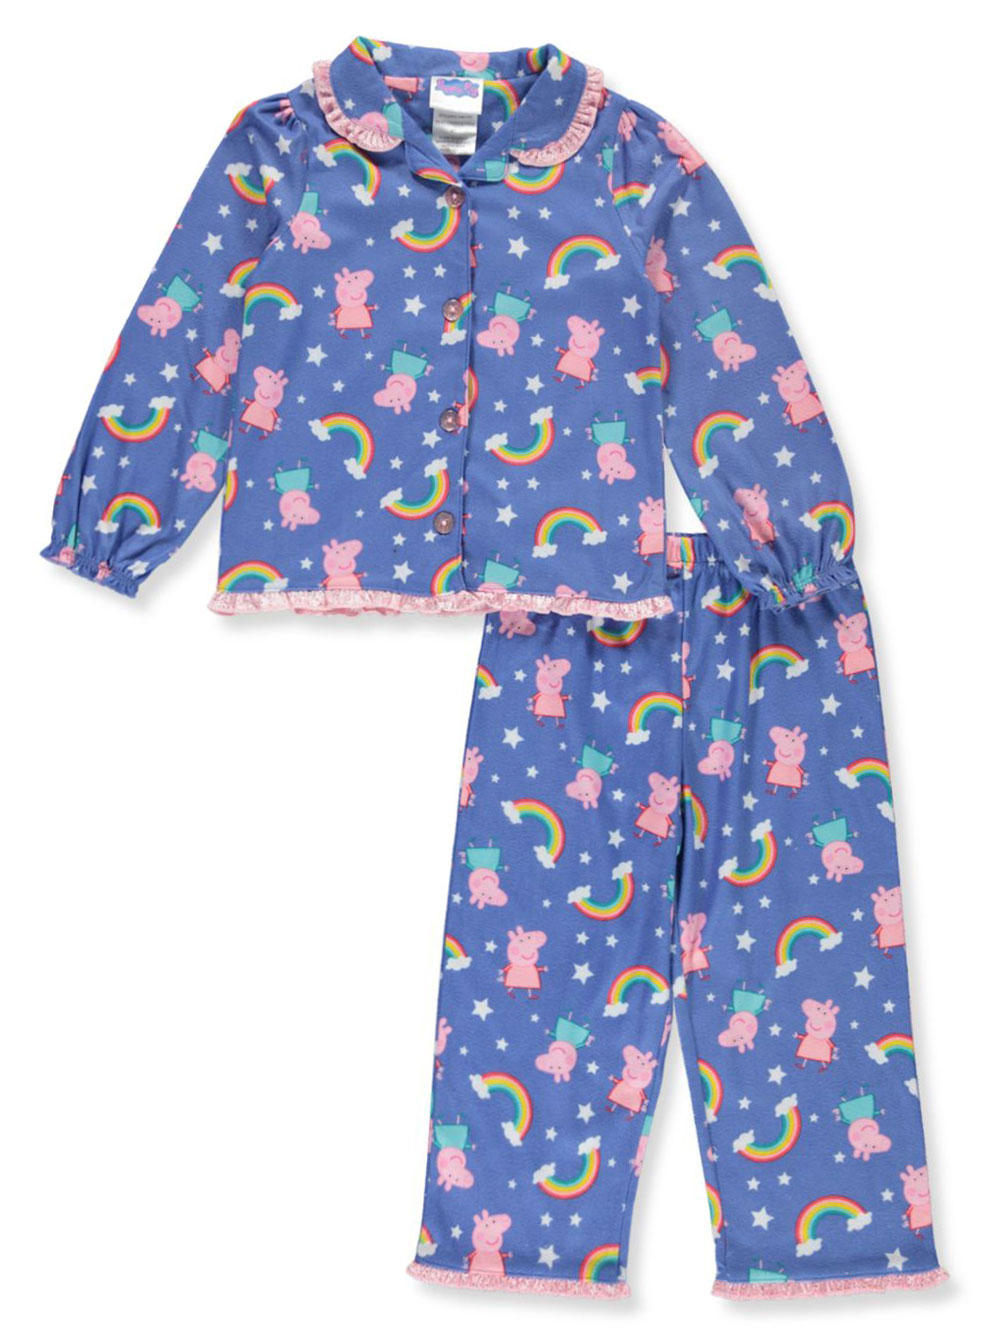 Peppa Pig Pajamas